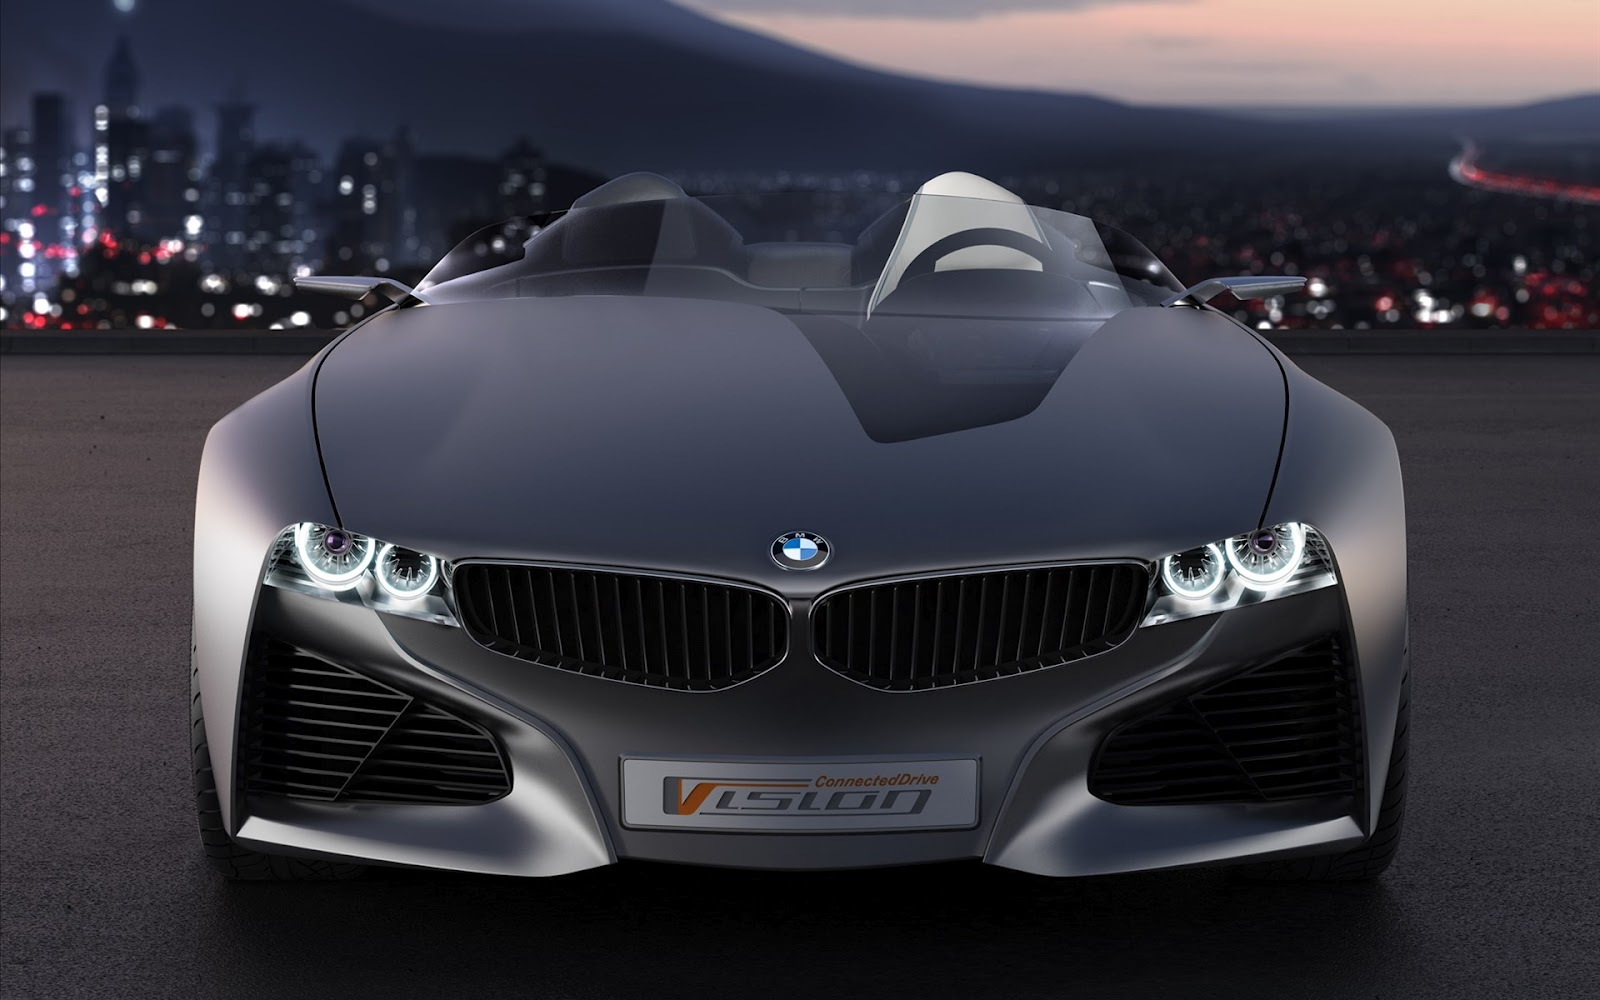 http://1.bp.blogspot.com/-IehIJCbVn5A/T0u4OoJJCWI/AAAAAAAAB1M/xXkbE3ZOcoo/s1600/hd_cars_wallpapers_bmw_vision_connected_drive_3-1920x1200.jpg